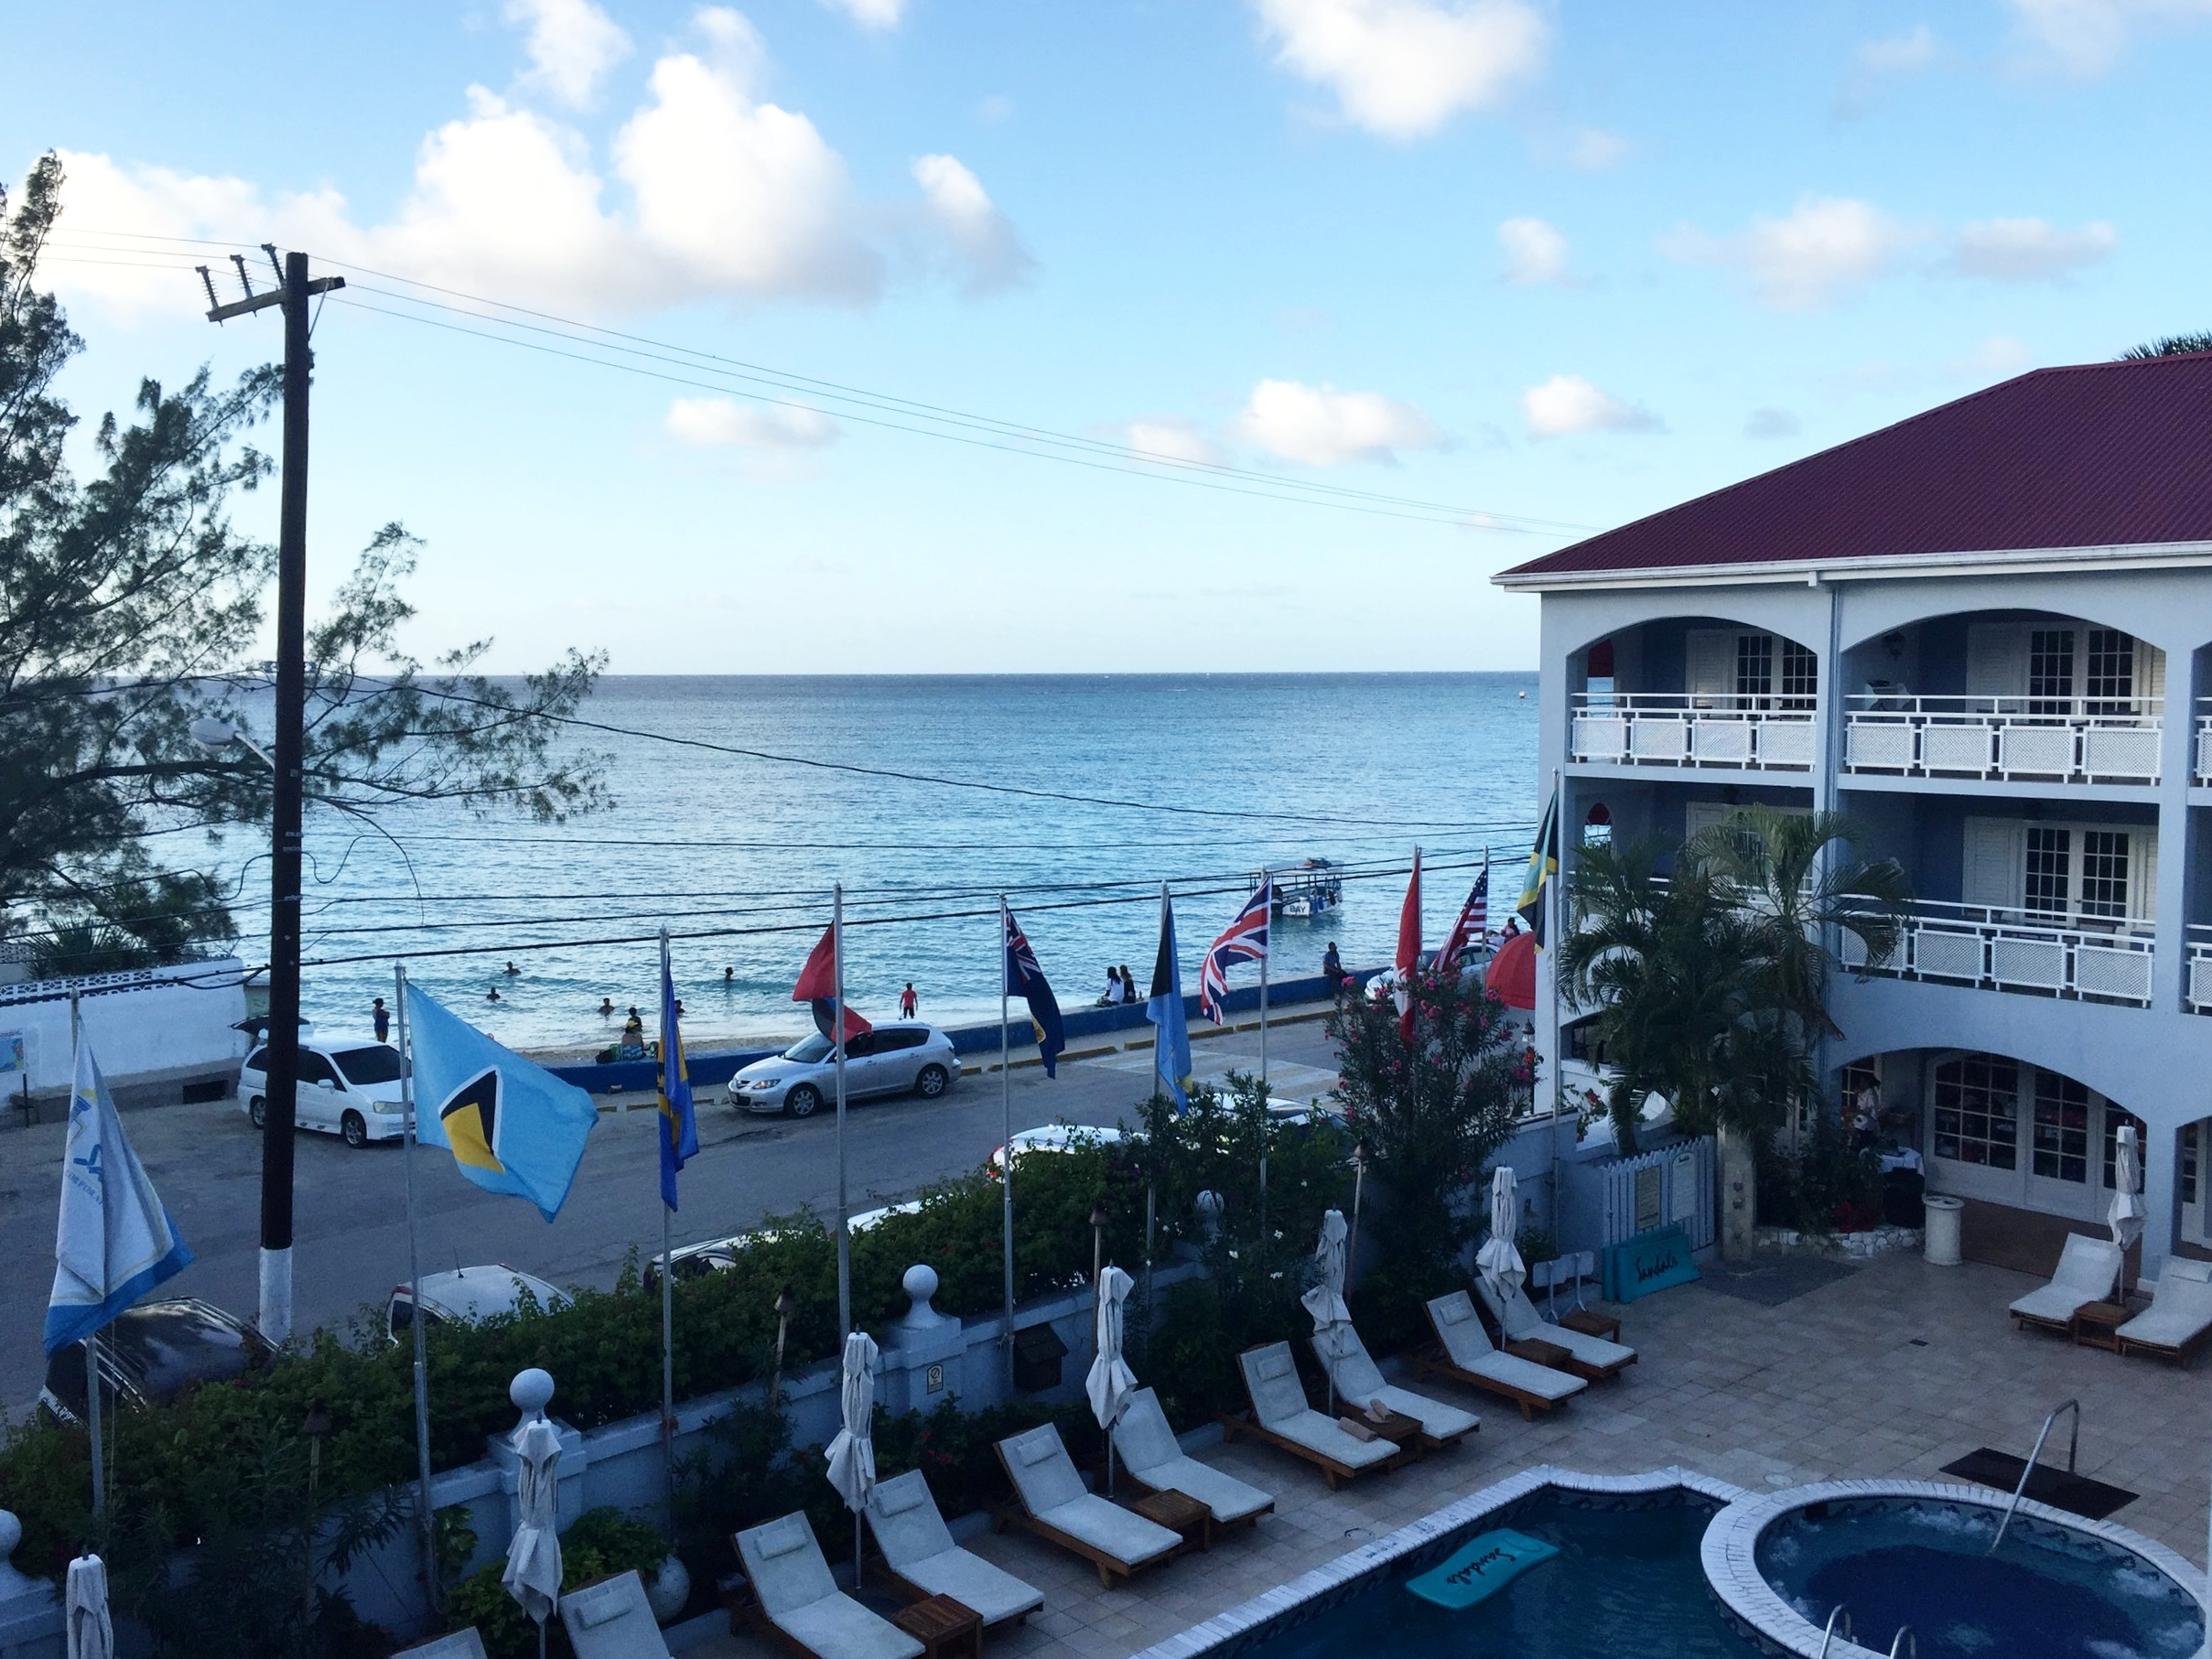 The view of the public beach from our room at Sandals Carlyle.